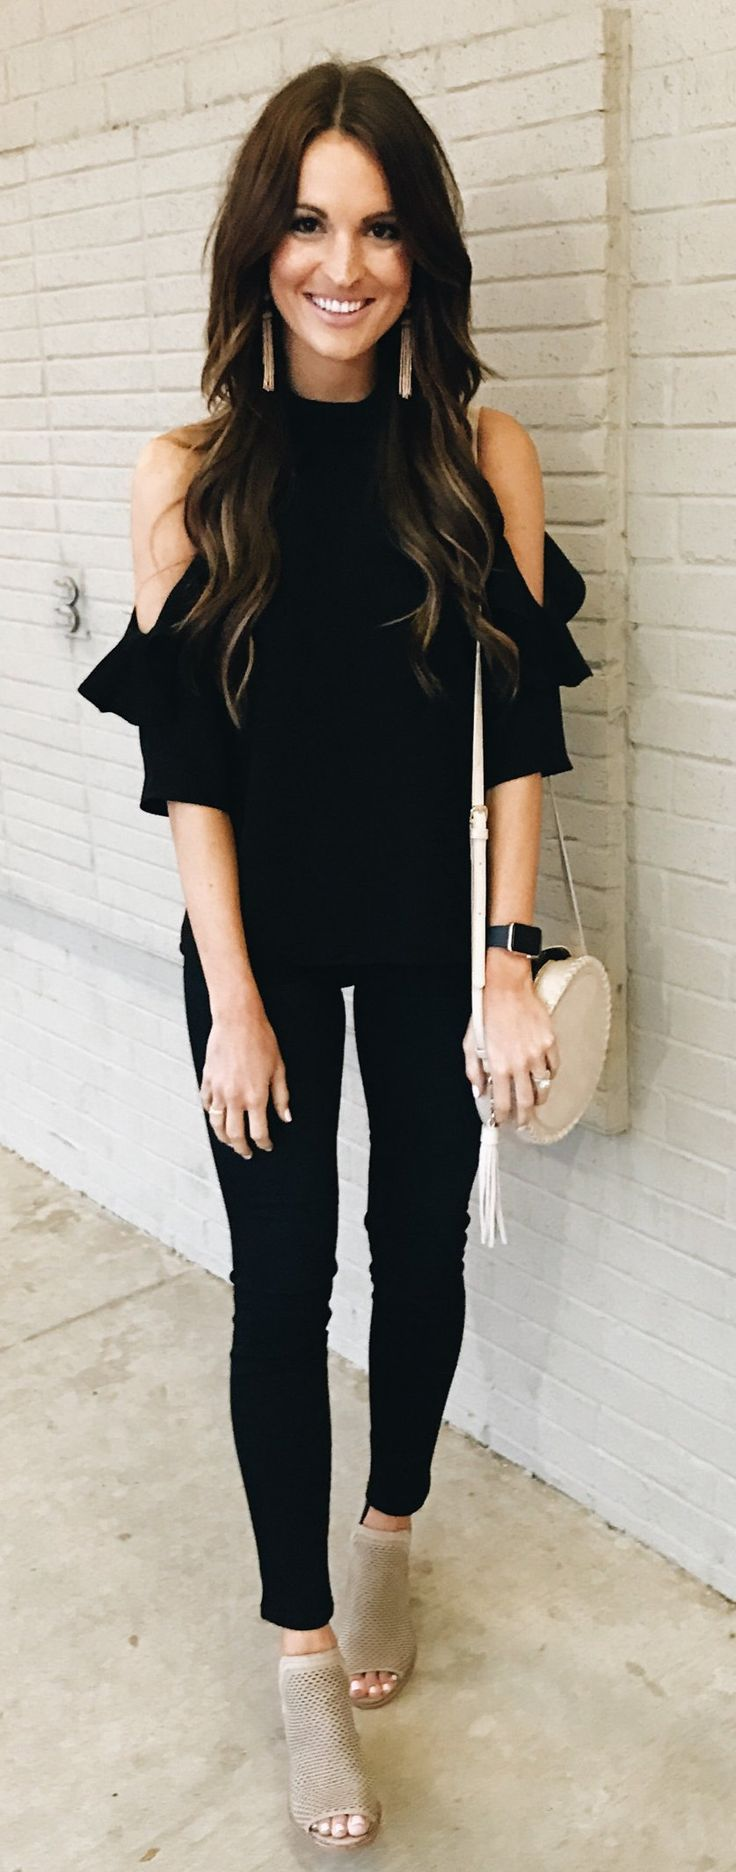 Best 25  Black tops ideas on Pinterest | Black shirts, Spring ...